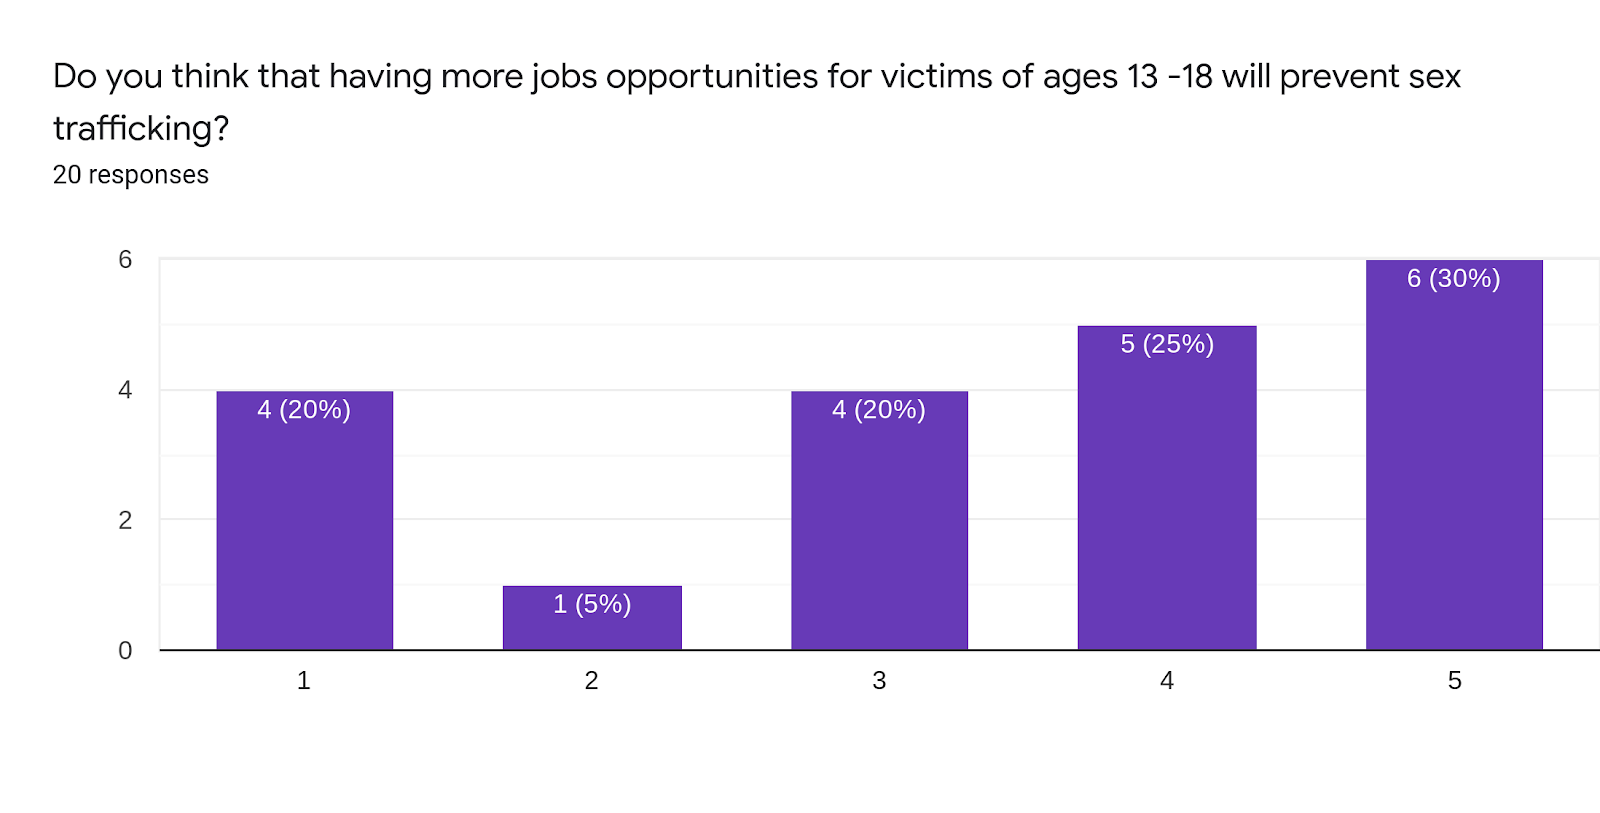 Forms response chart. Question title: Do you think that having more jobs opportunities for victims of ages 13 -18 will prevent sex trafficking?. Number of responses: 20 responses.